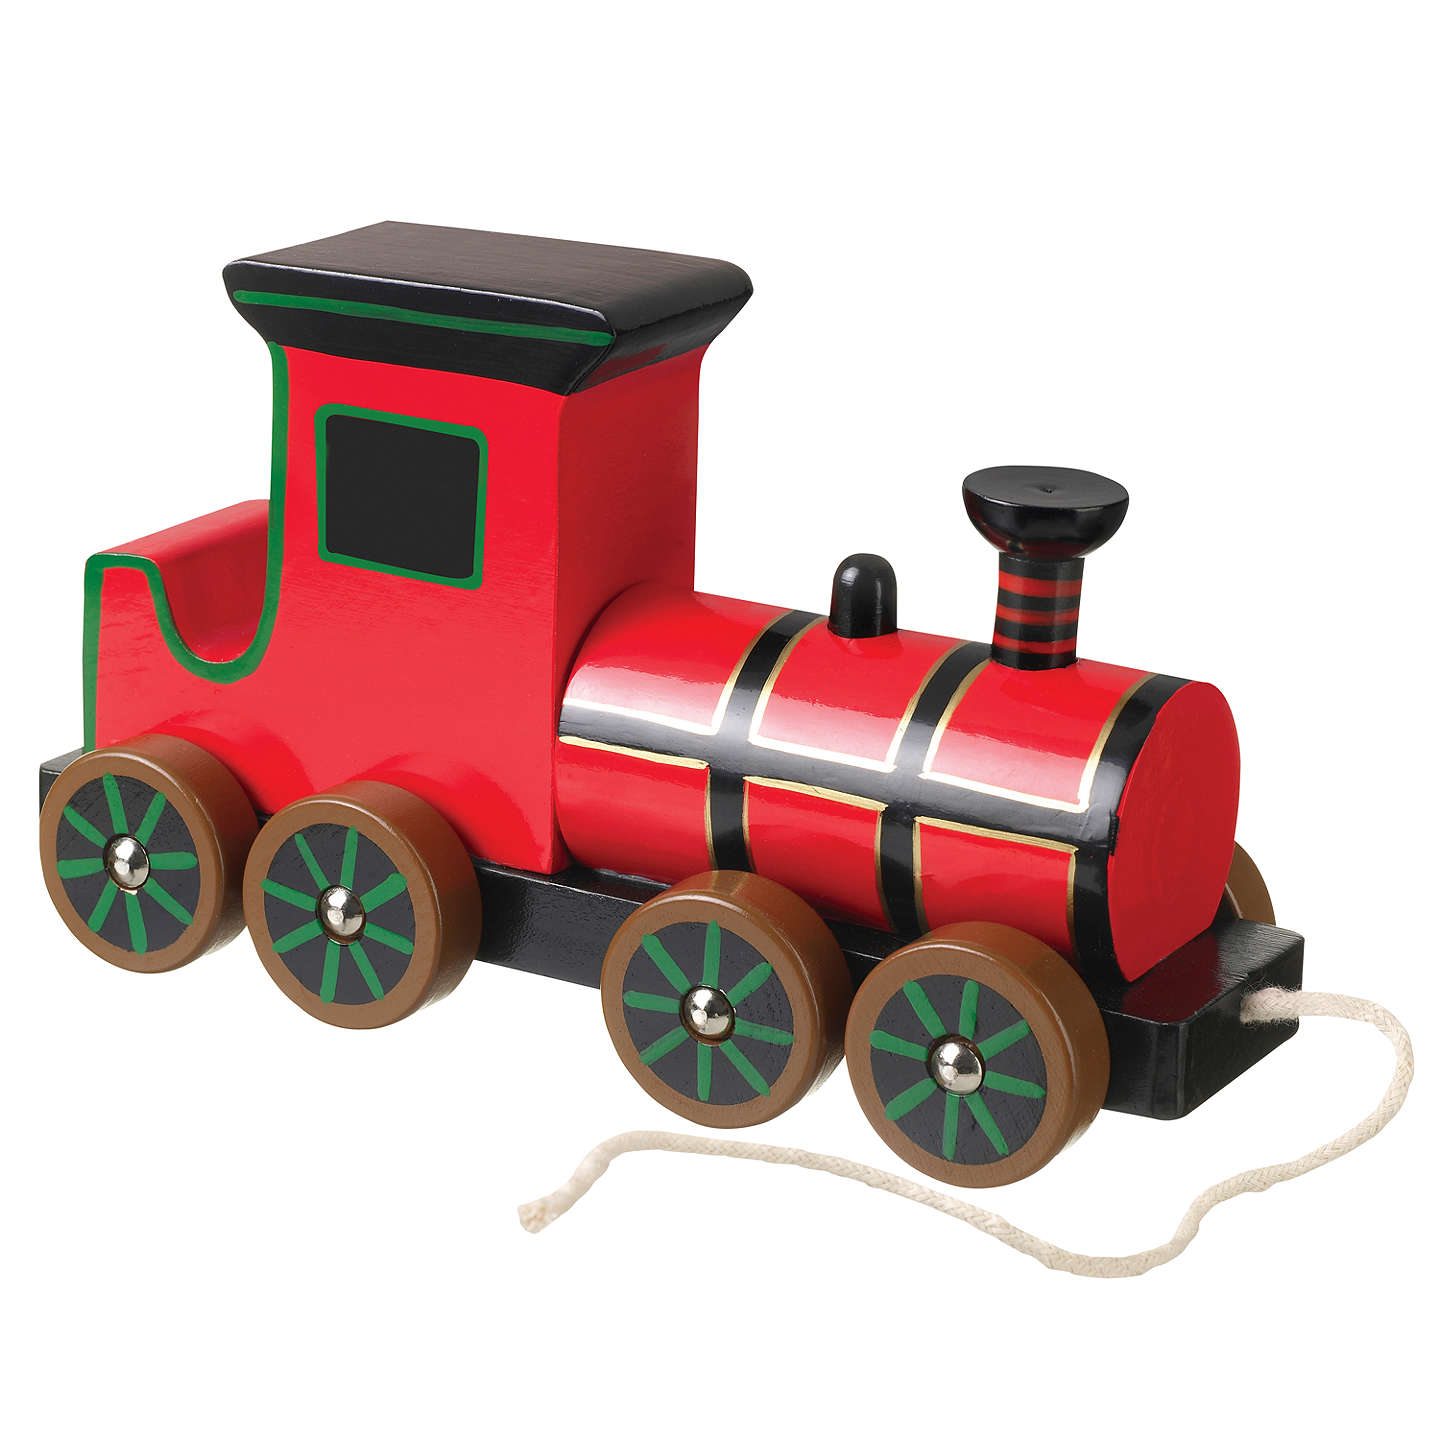 Toy train online shopping